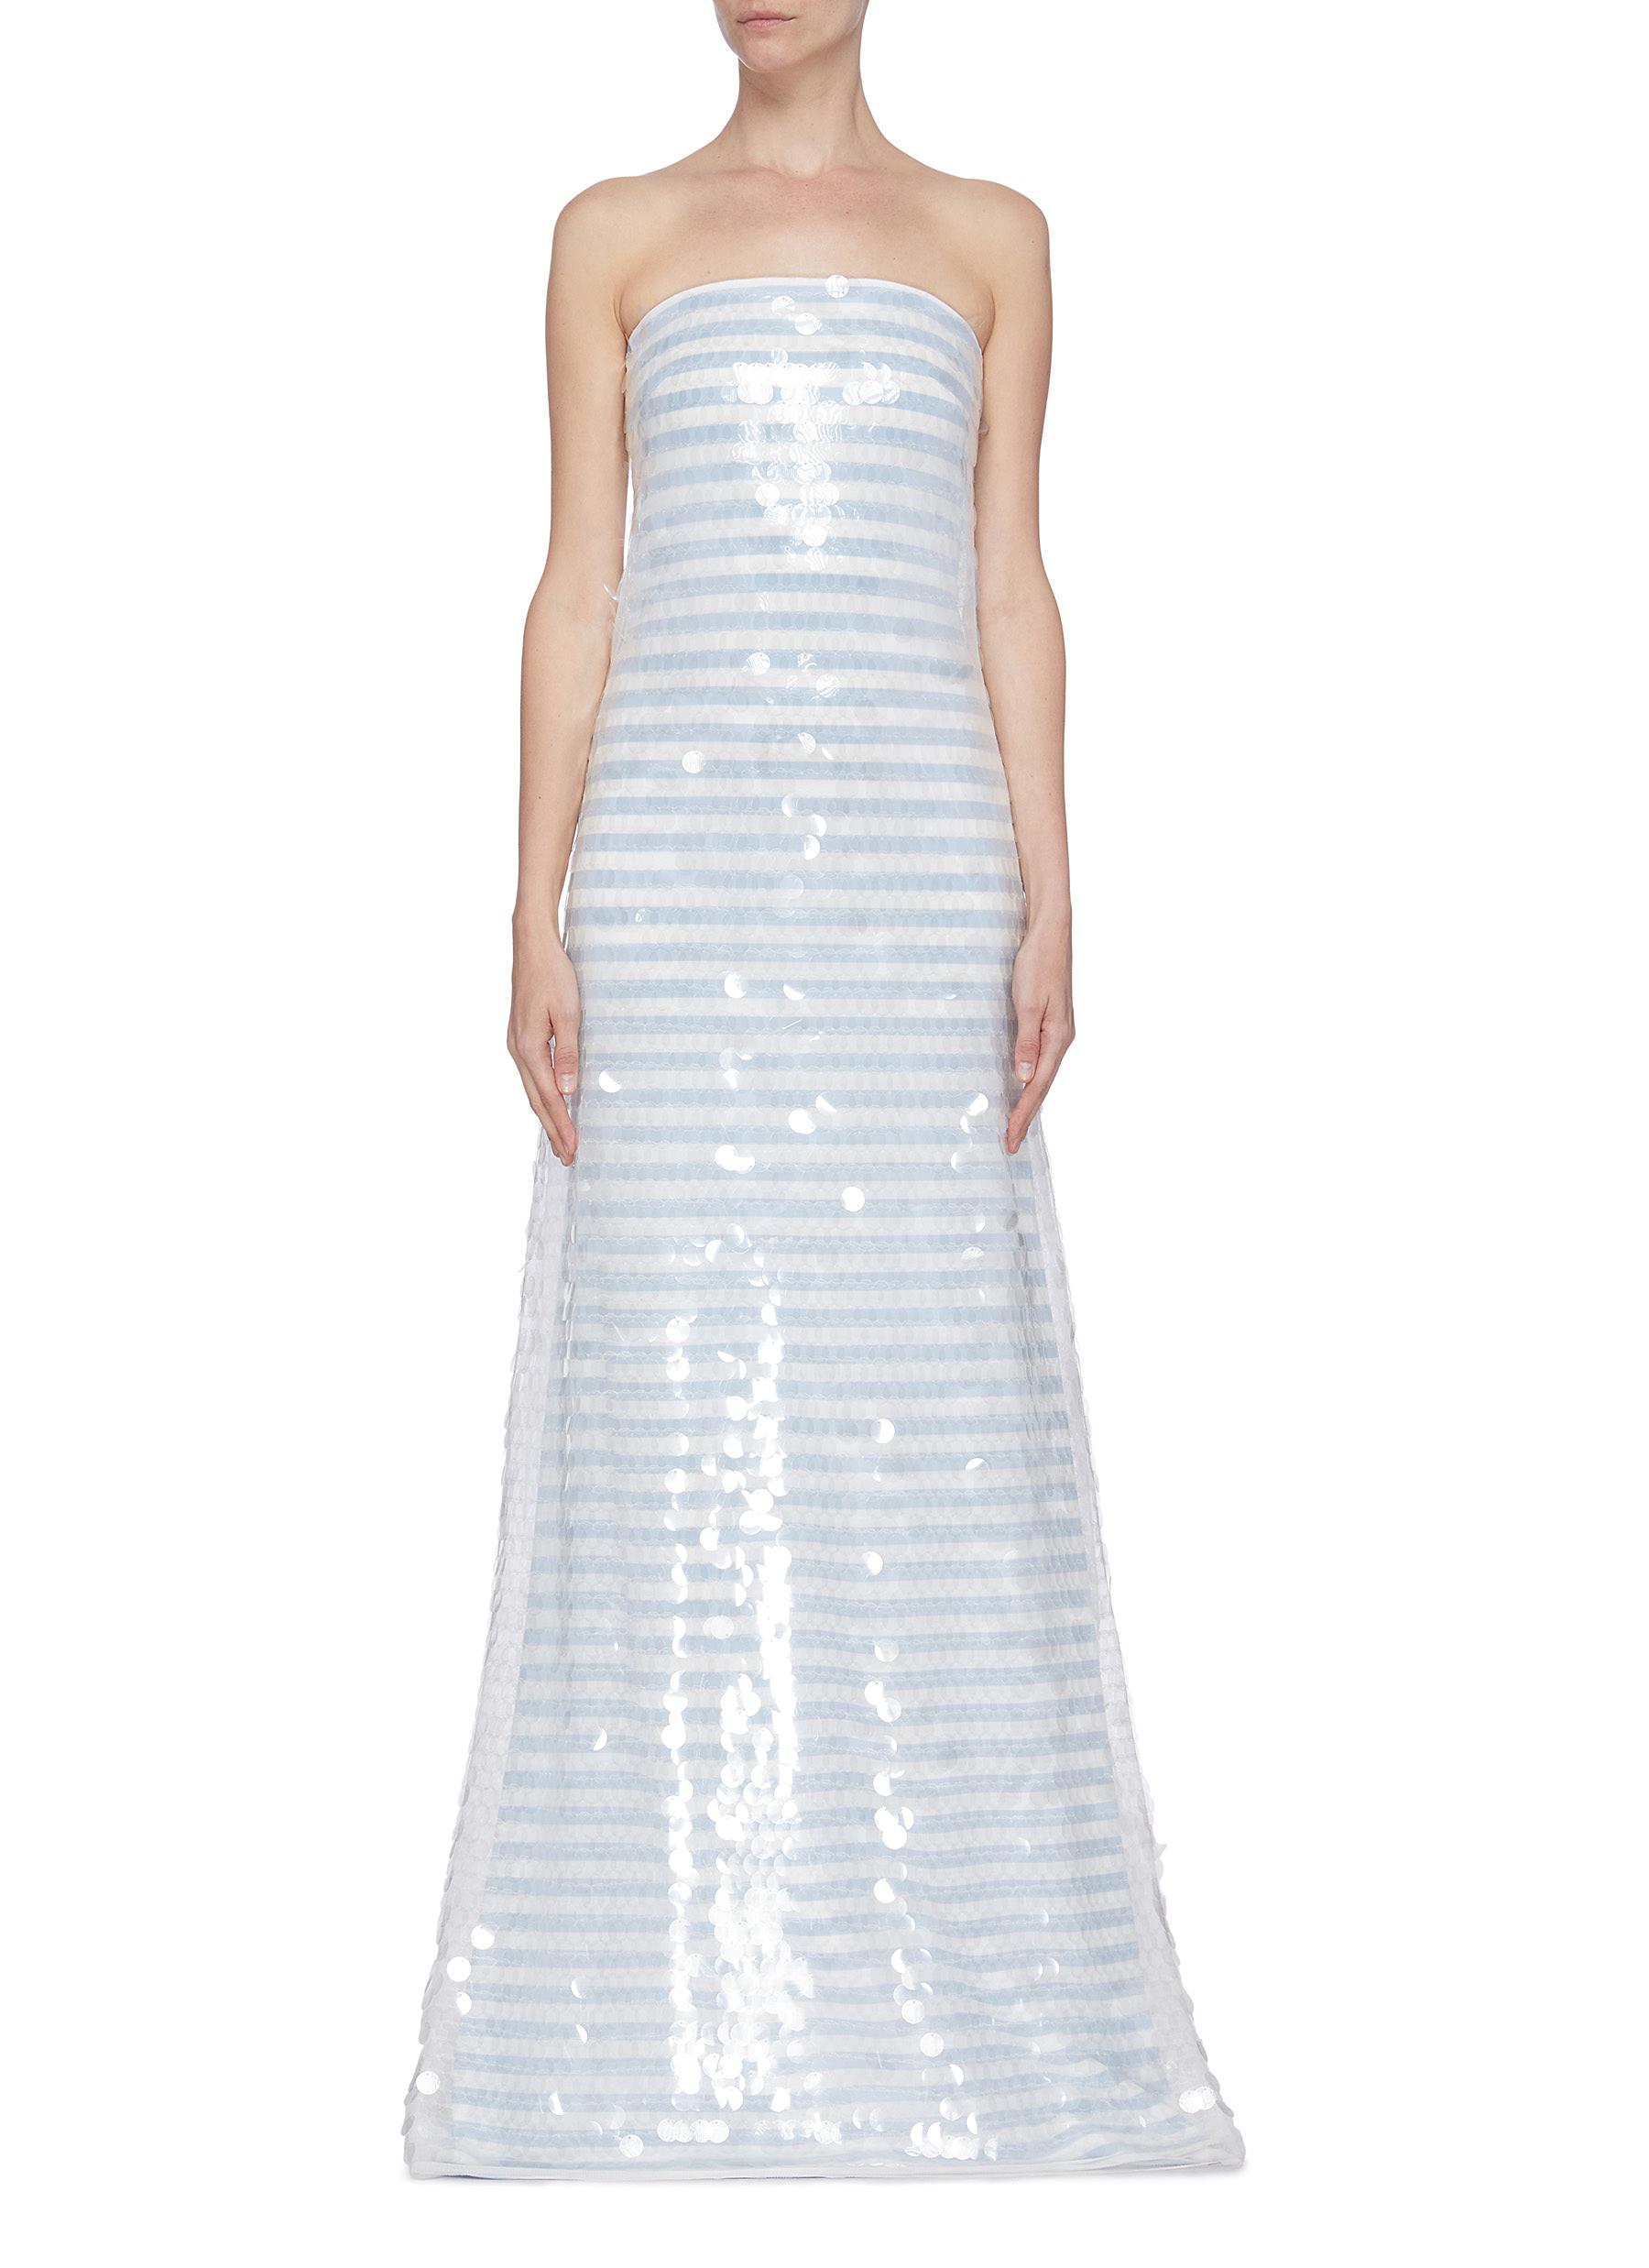 shop Leal Daccarett 'Noches De Verano' sequin strip strapless gown online